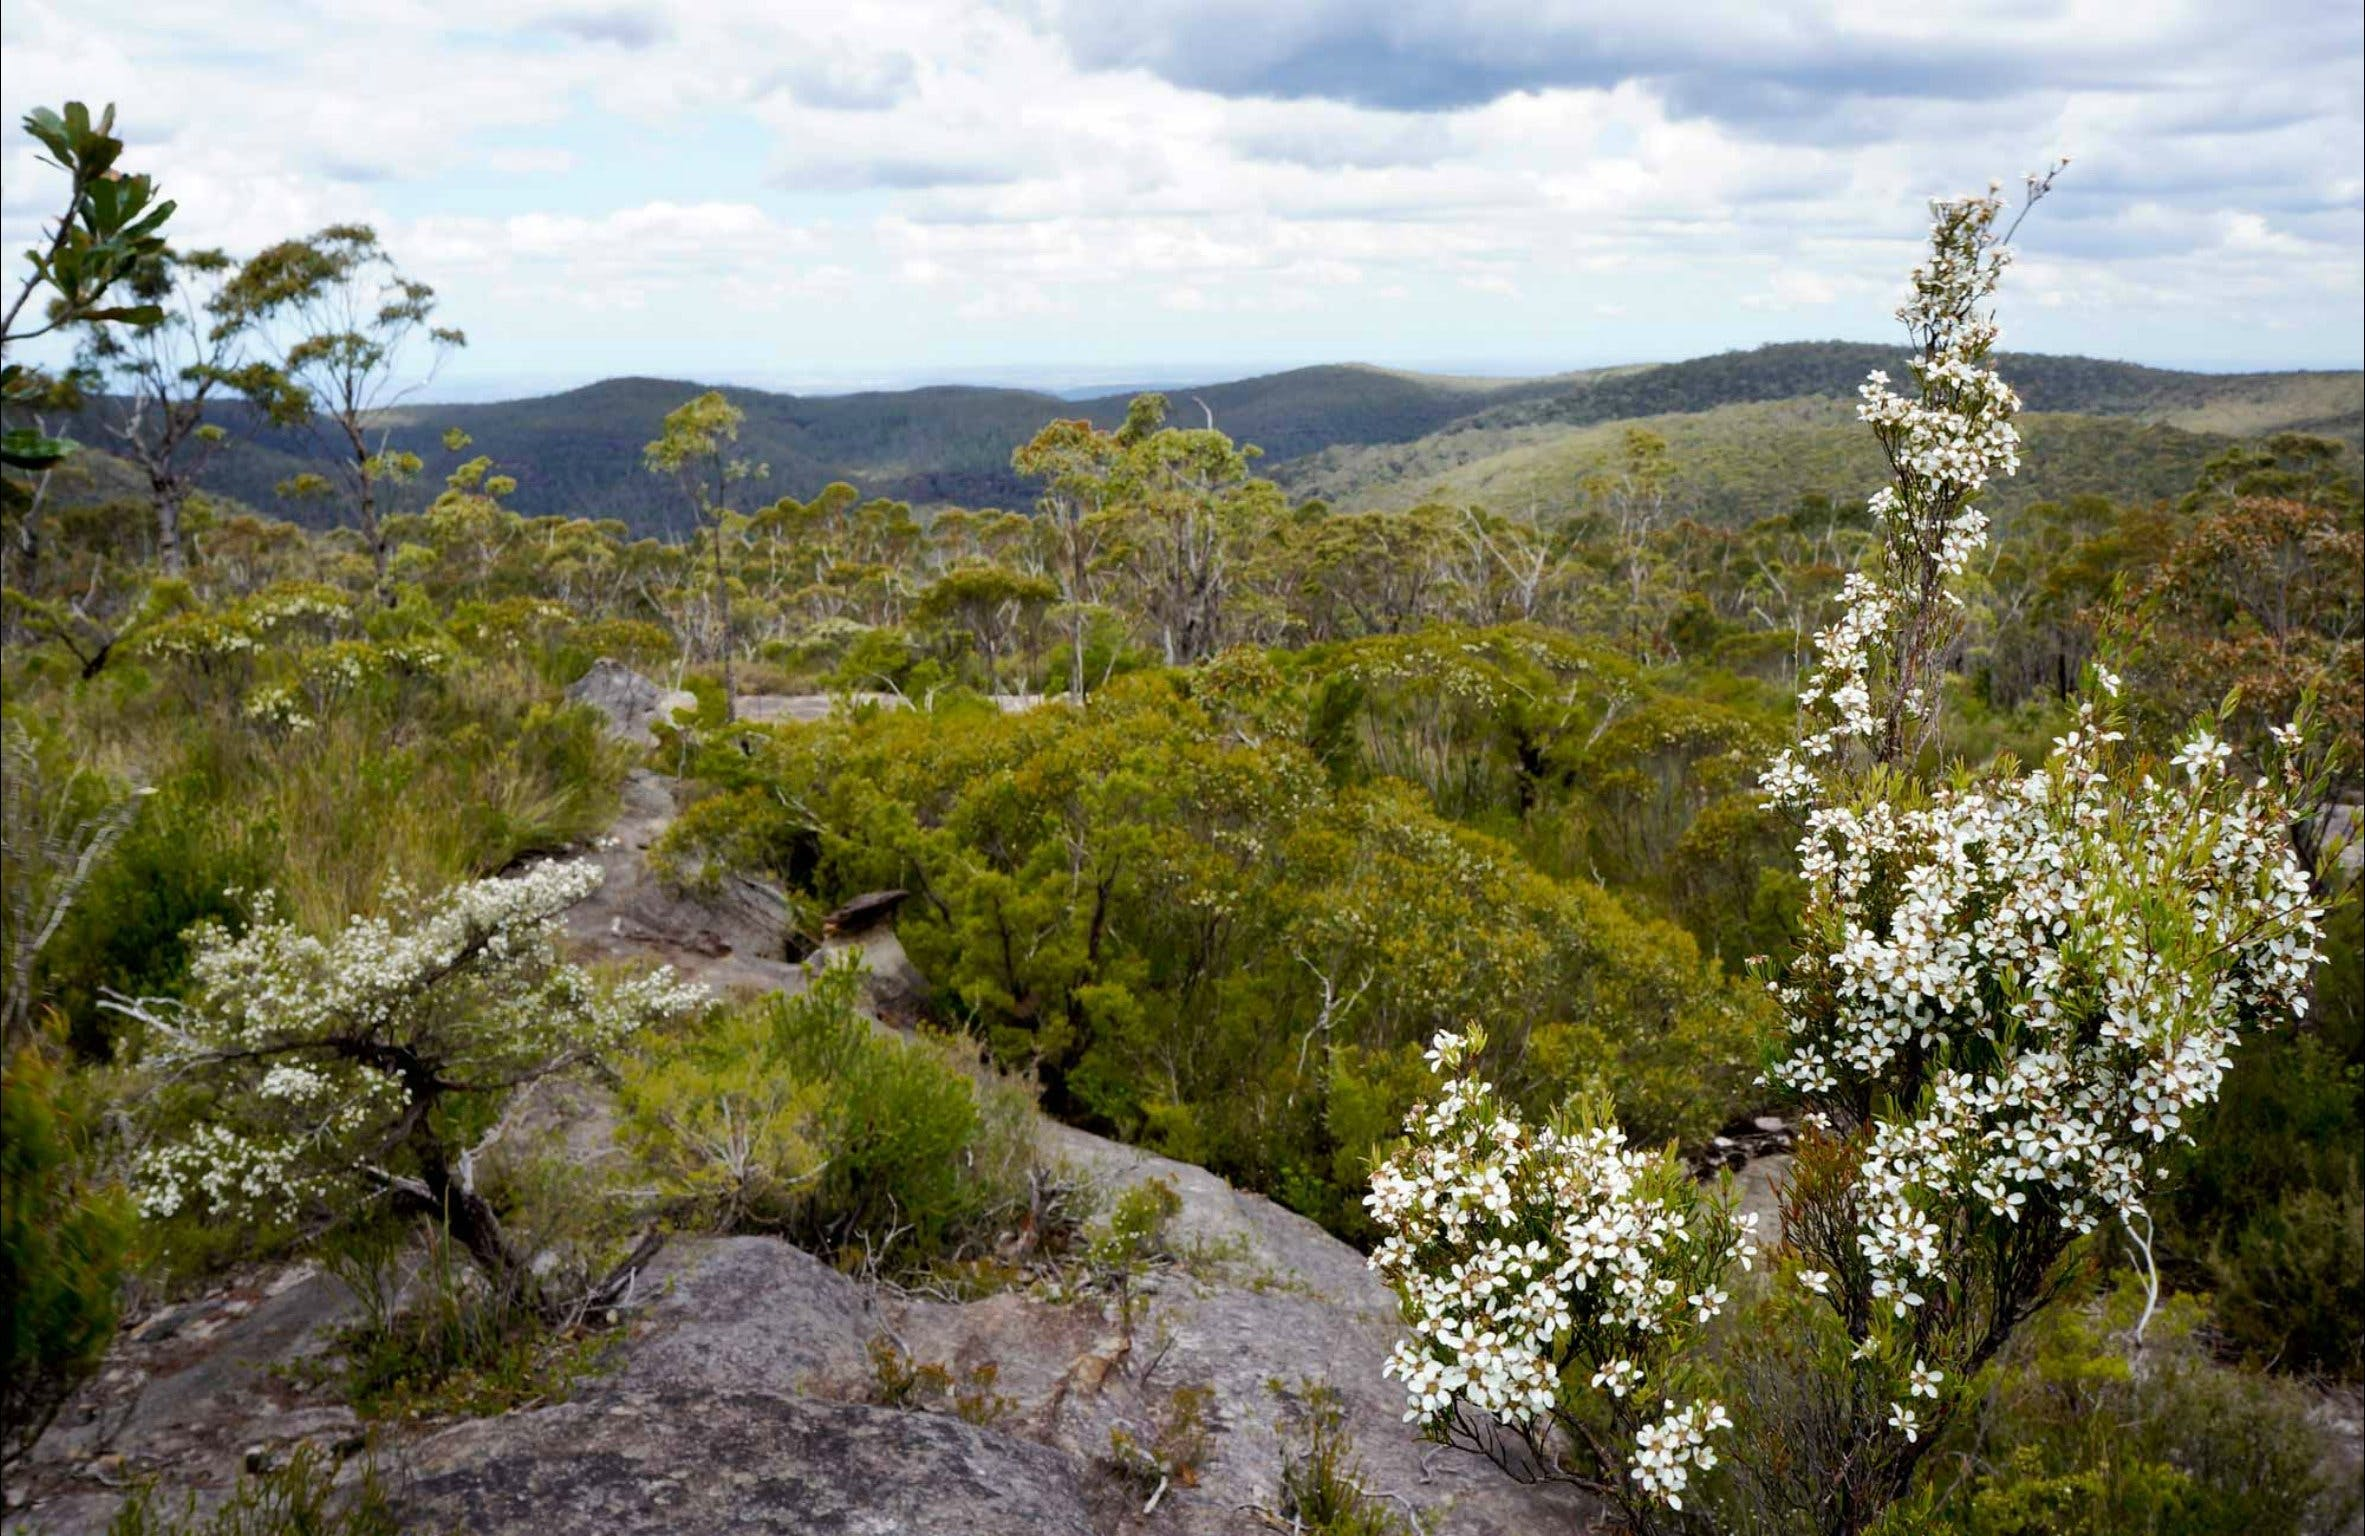 Murphys fire trail – Woodford to Murphys Glen campground